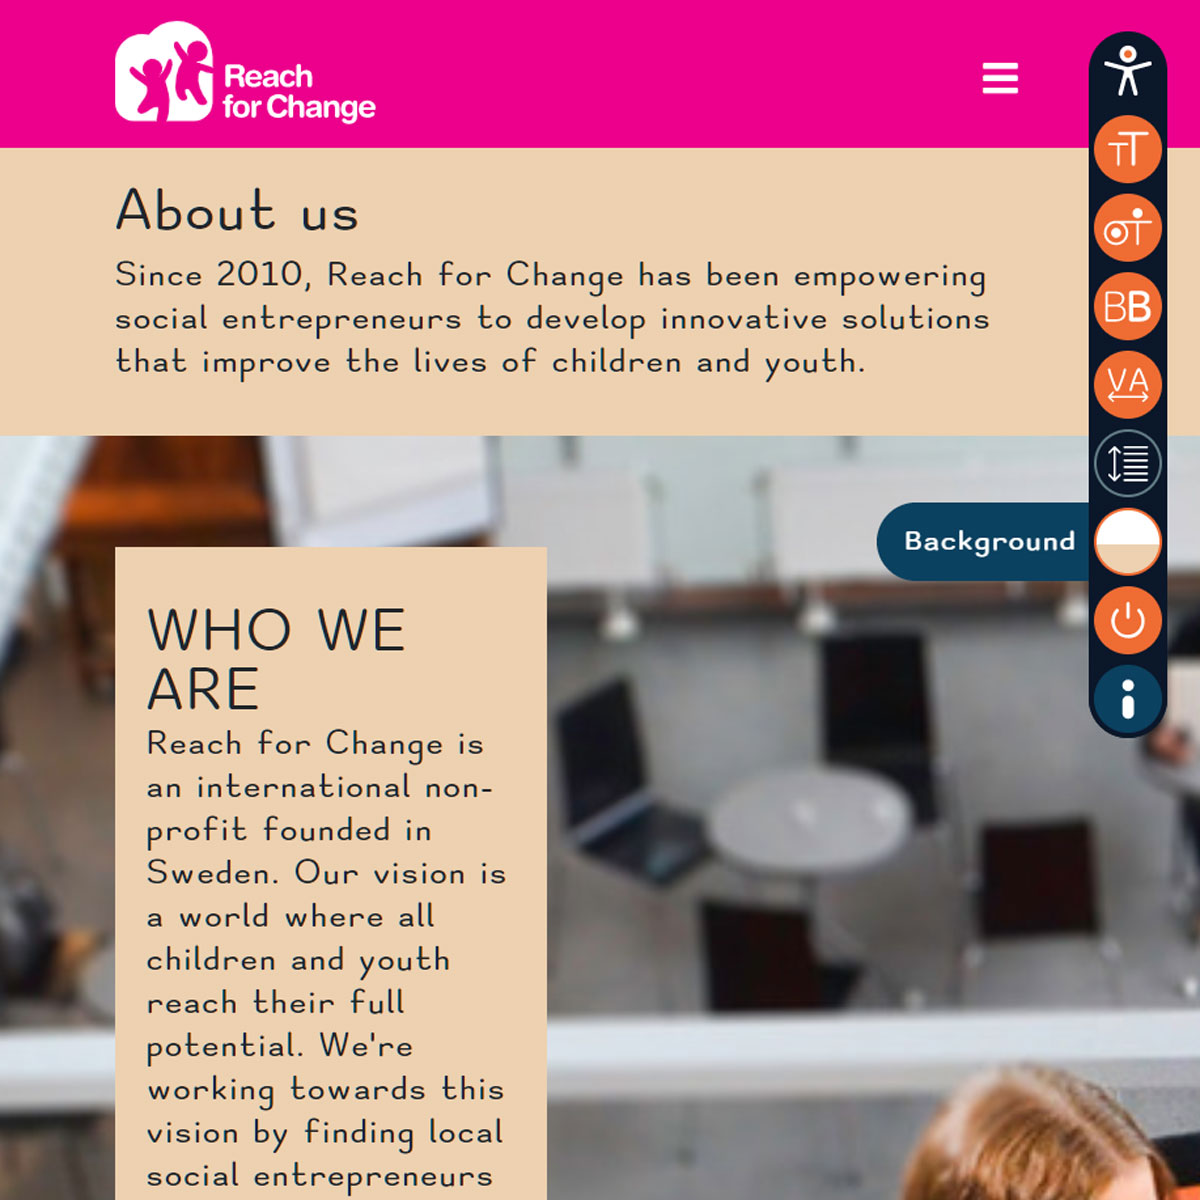 web accessibility client Reach For Change